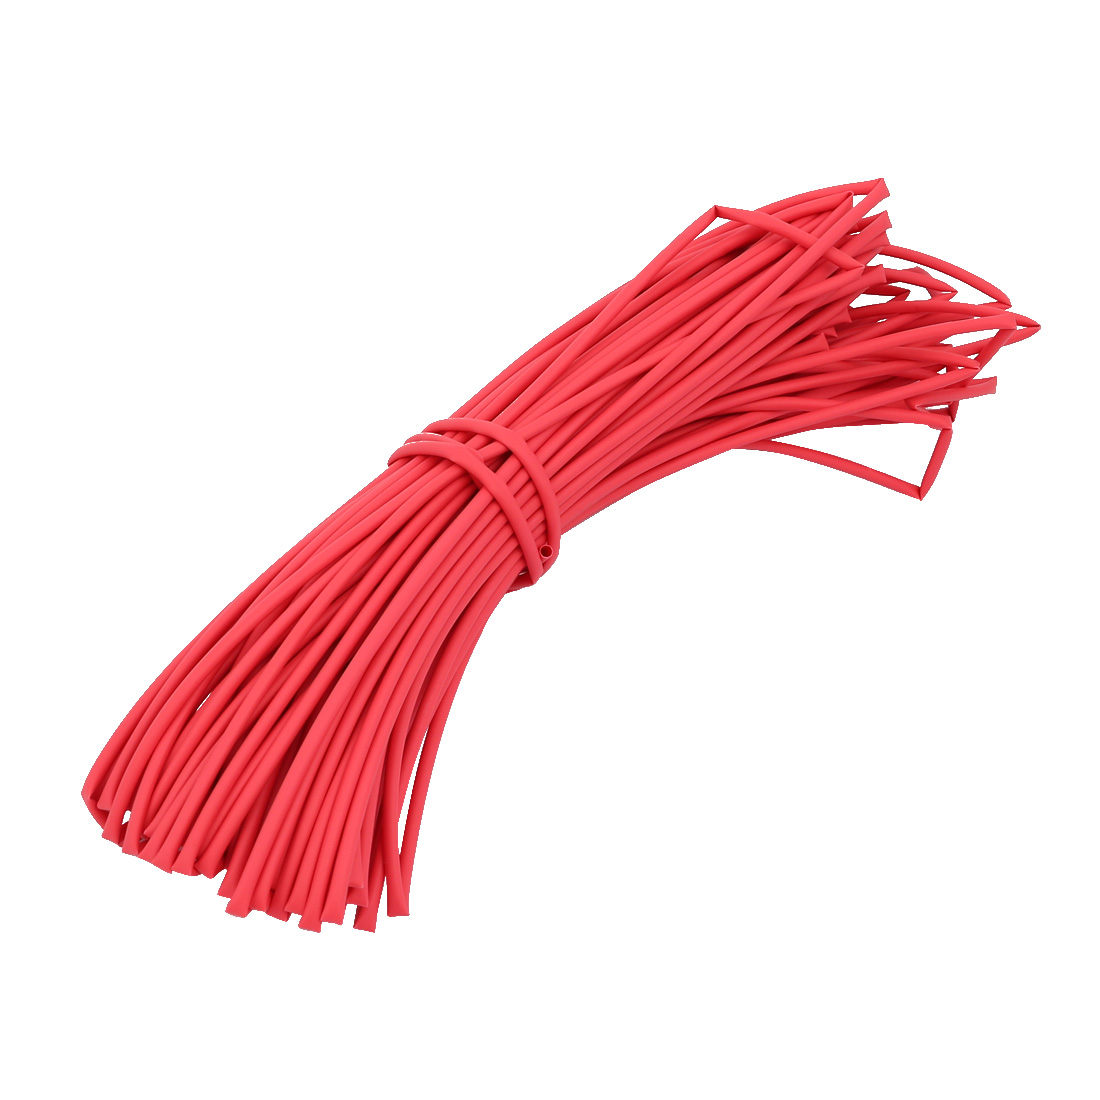 Polyolefin Heat Shrinkable Tube Wire Cable Sleeve 25M Length 2mm Inner Dia Red